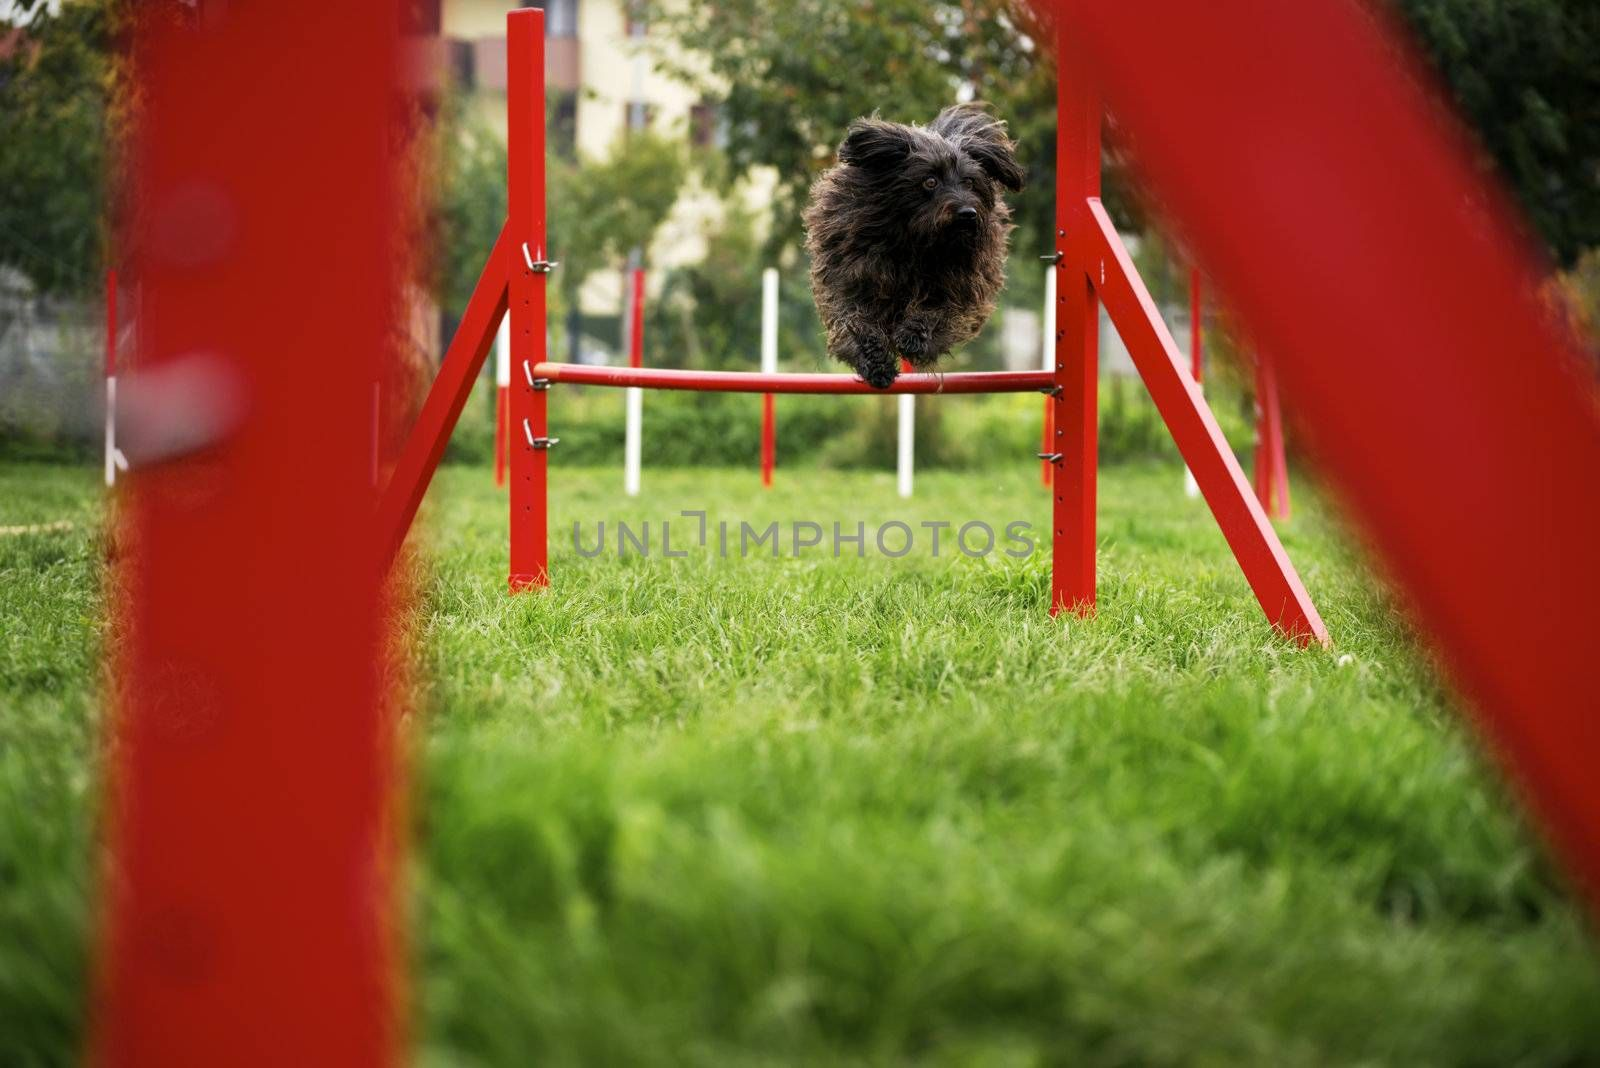 Pets racing in competition, agility race with dog jumping over red hurdle